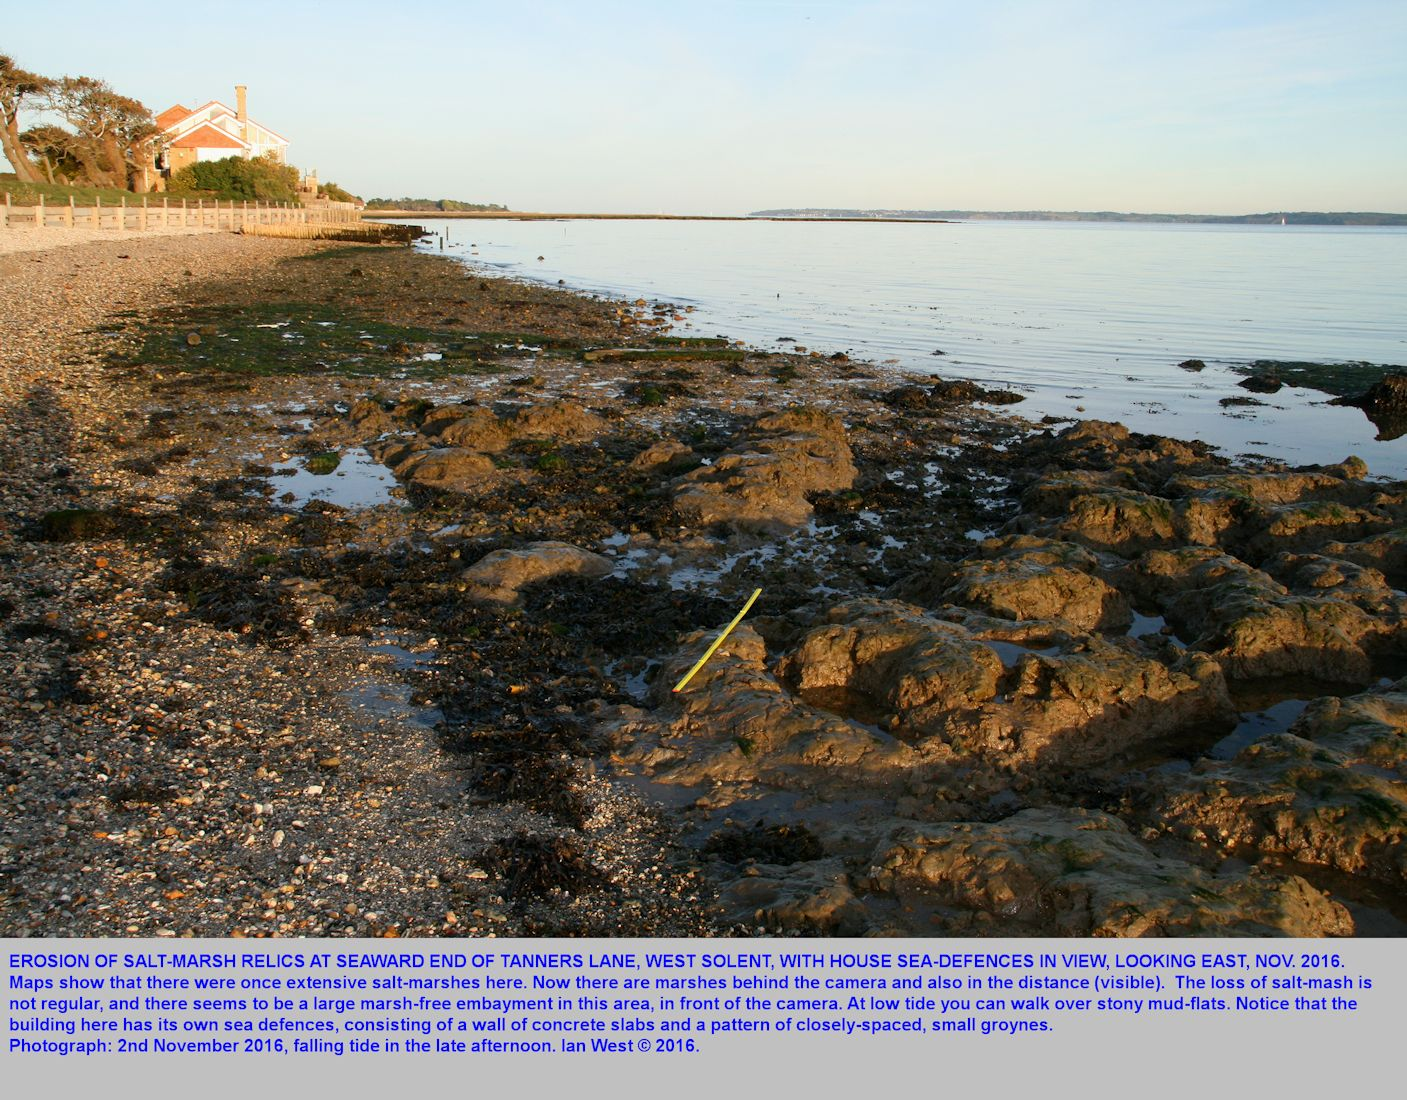 At Tanners Lane, Solent Estuaries, southern England, with a falling tide, on 2nd November 2016, view eastward